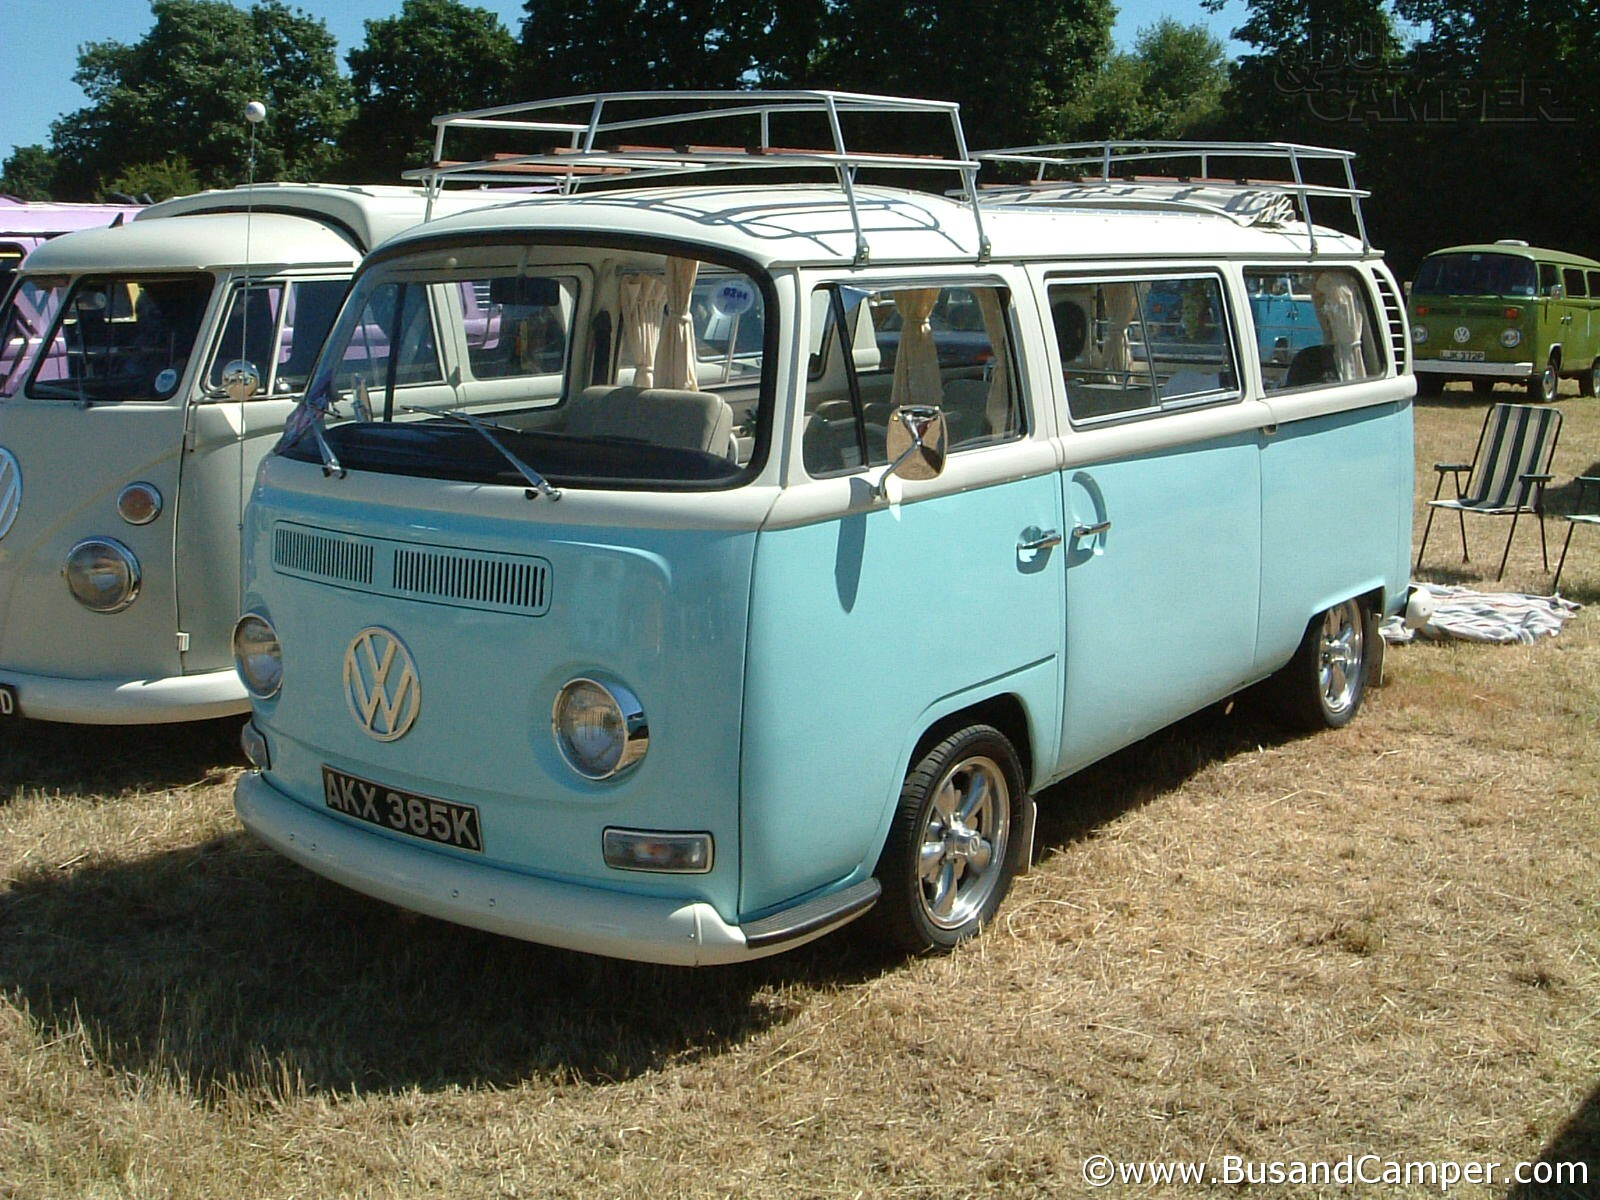 Bay Camper baby blue